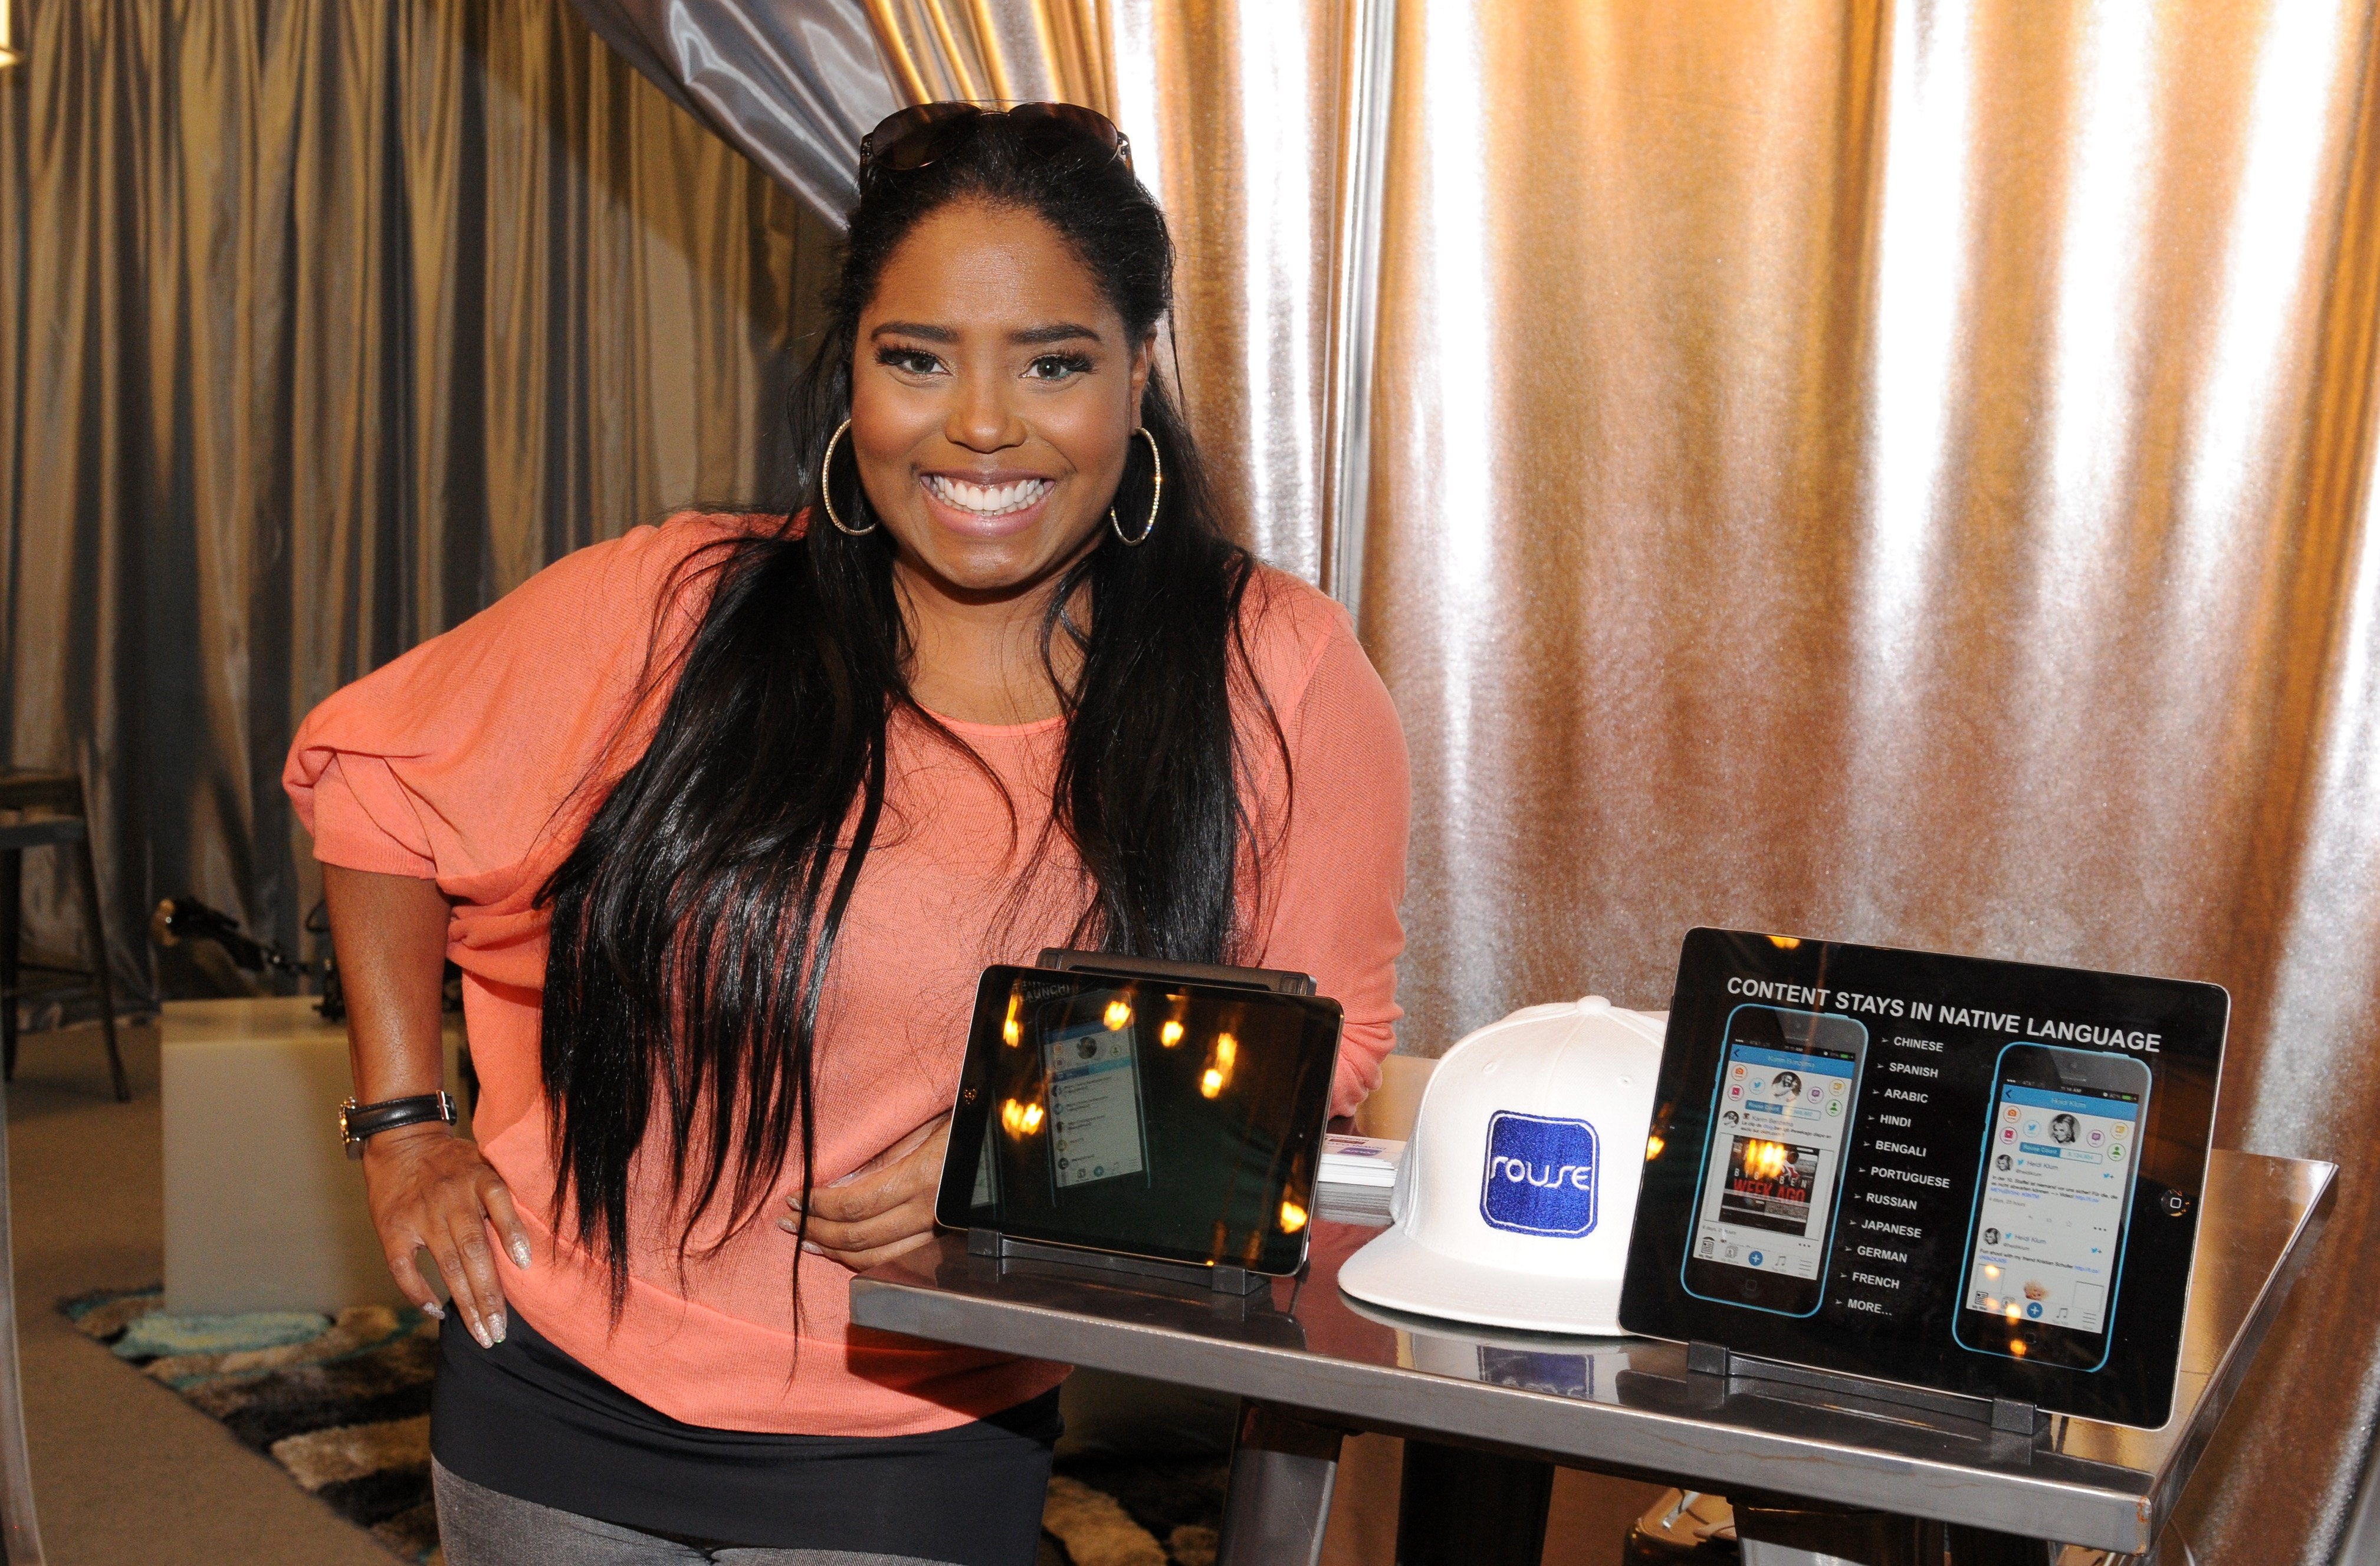 Shar Jackson at the Grammy gift lounge during The 57th Annual Grammy Awards on February 6, 2015 in Los Angeles, California. | Photo: GettyImages